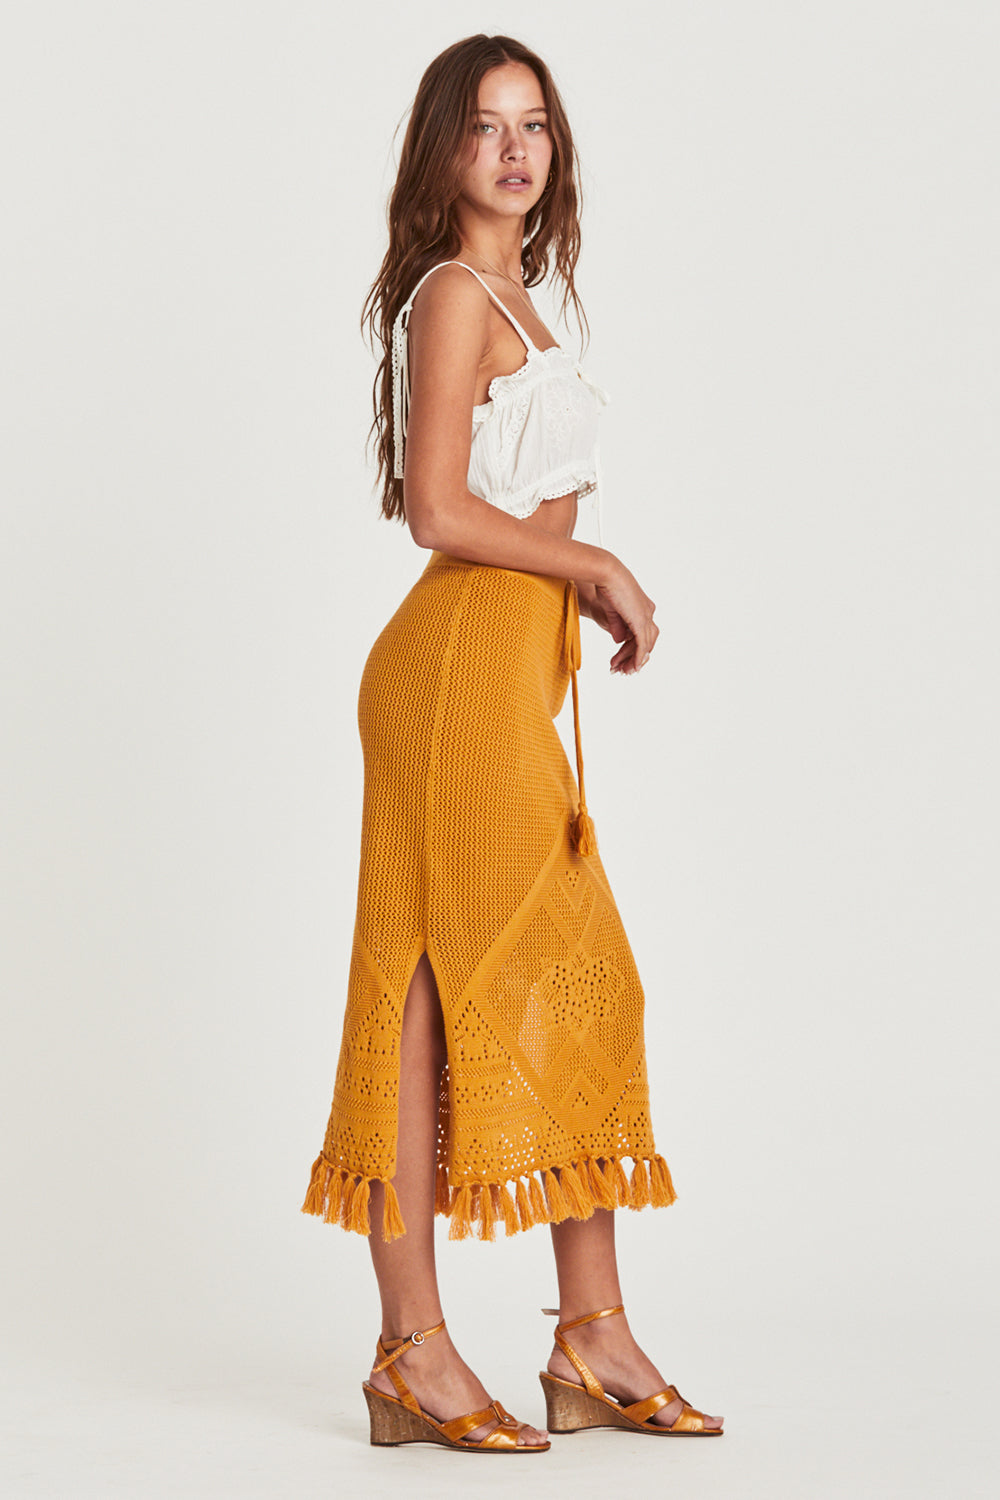 Madox Skirt in Butternut